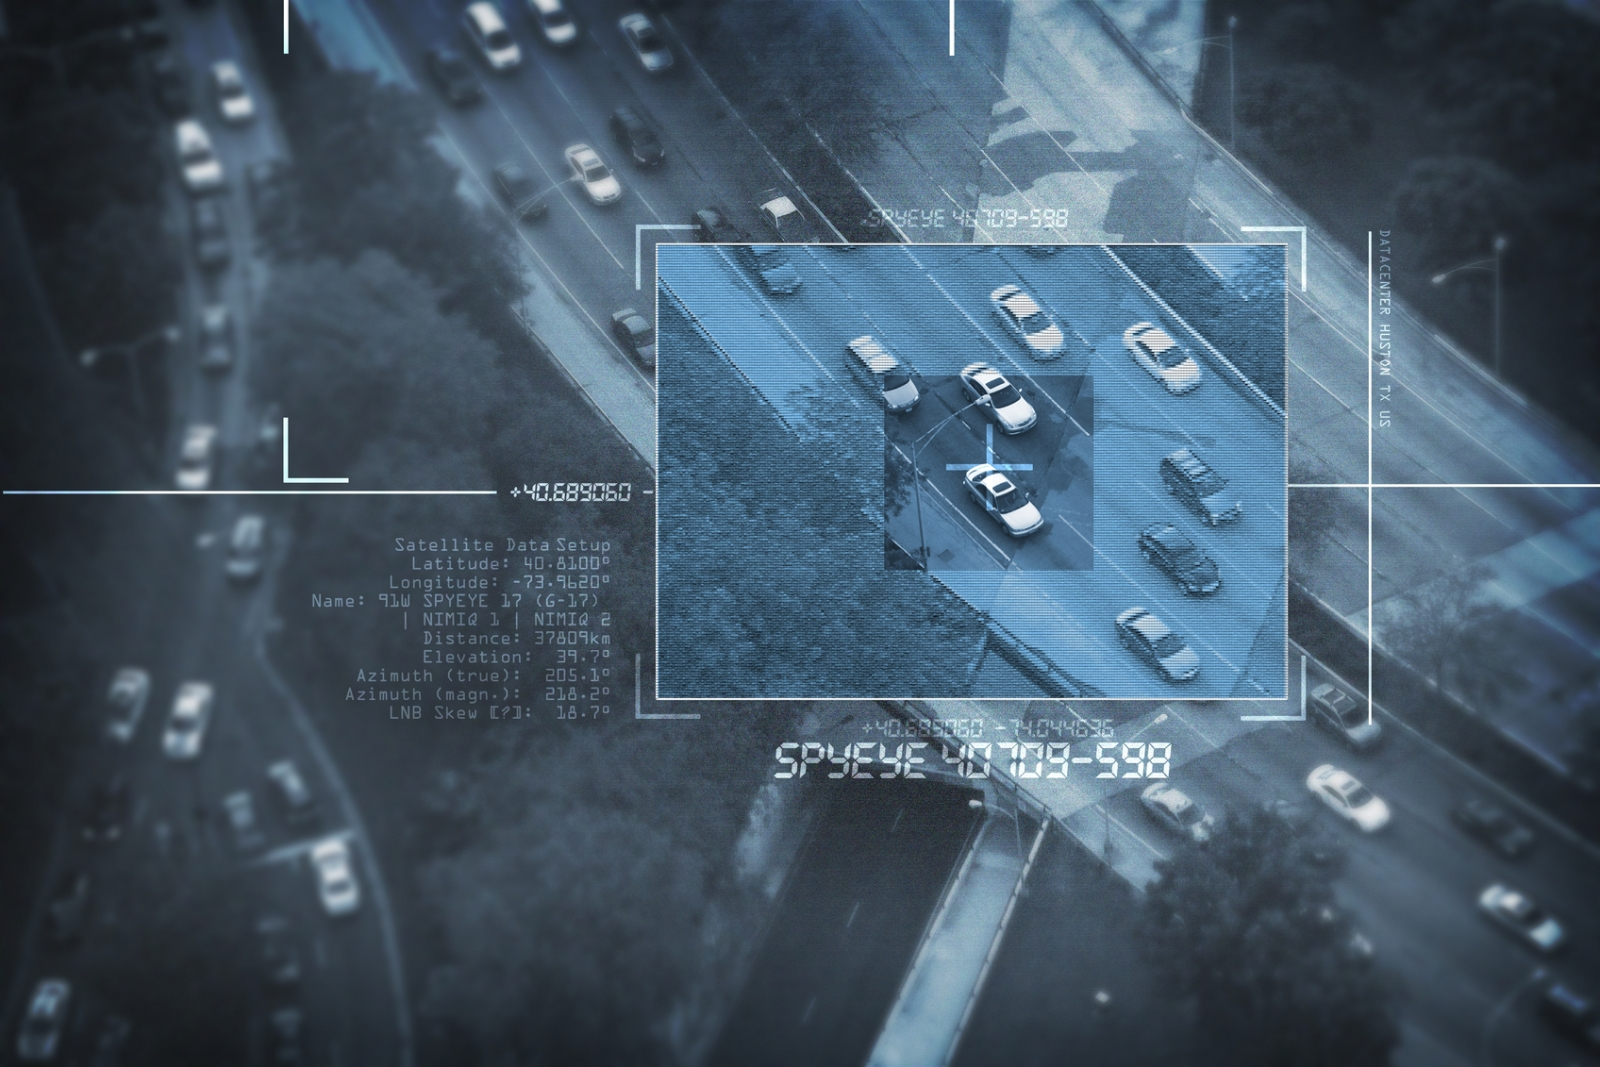 UK cops provided surveillance tools and support to the Competition and Markets Authority - report